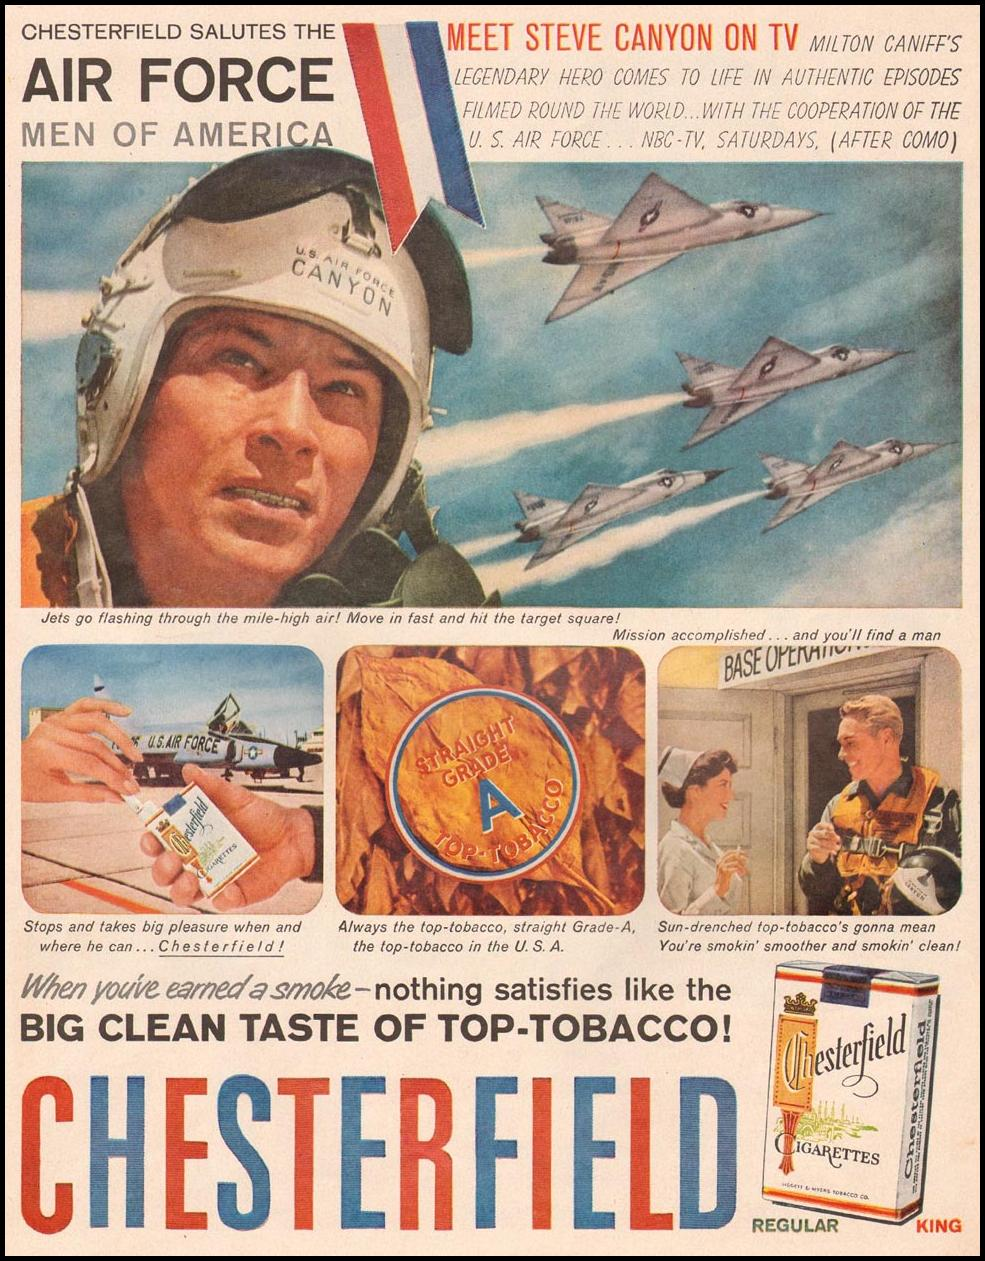 CHESTERFIELD CIGARETTES LIFE 09/15/1958